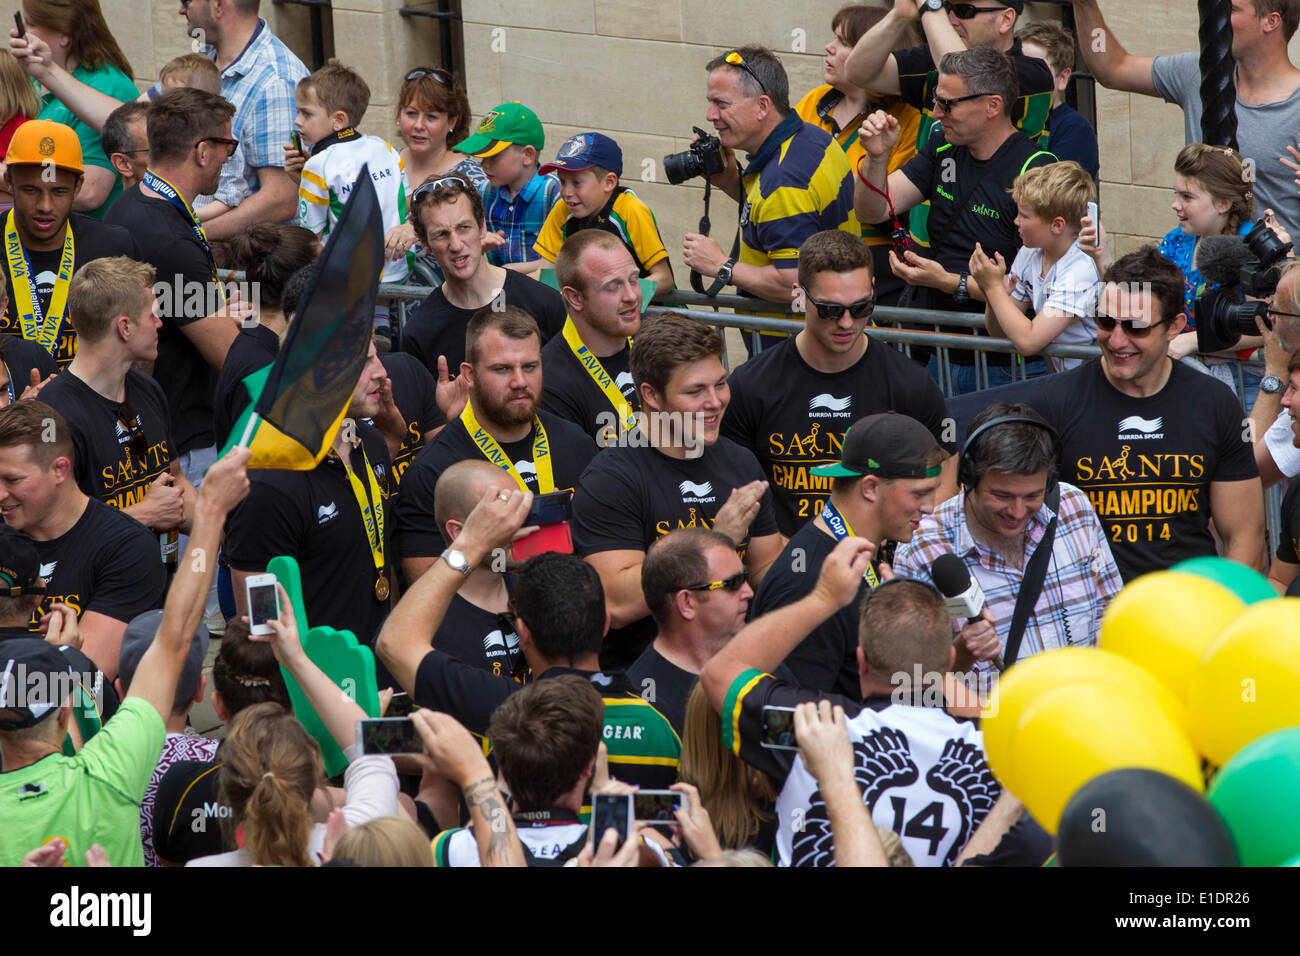 Northampton. Sunday 1st June 2014. The Guild Hall, The Northampton Saints players and coaching staff parade the Aviva Premiership Champions trophy won yesterday 2014-05-31 and Amlin Challenge Cup into the town centre to celebrate a historic double success with their fans. Credit:  Keith J Smith./Alamy Live News - Stock Image